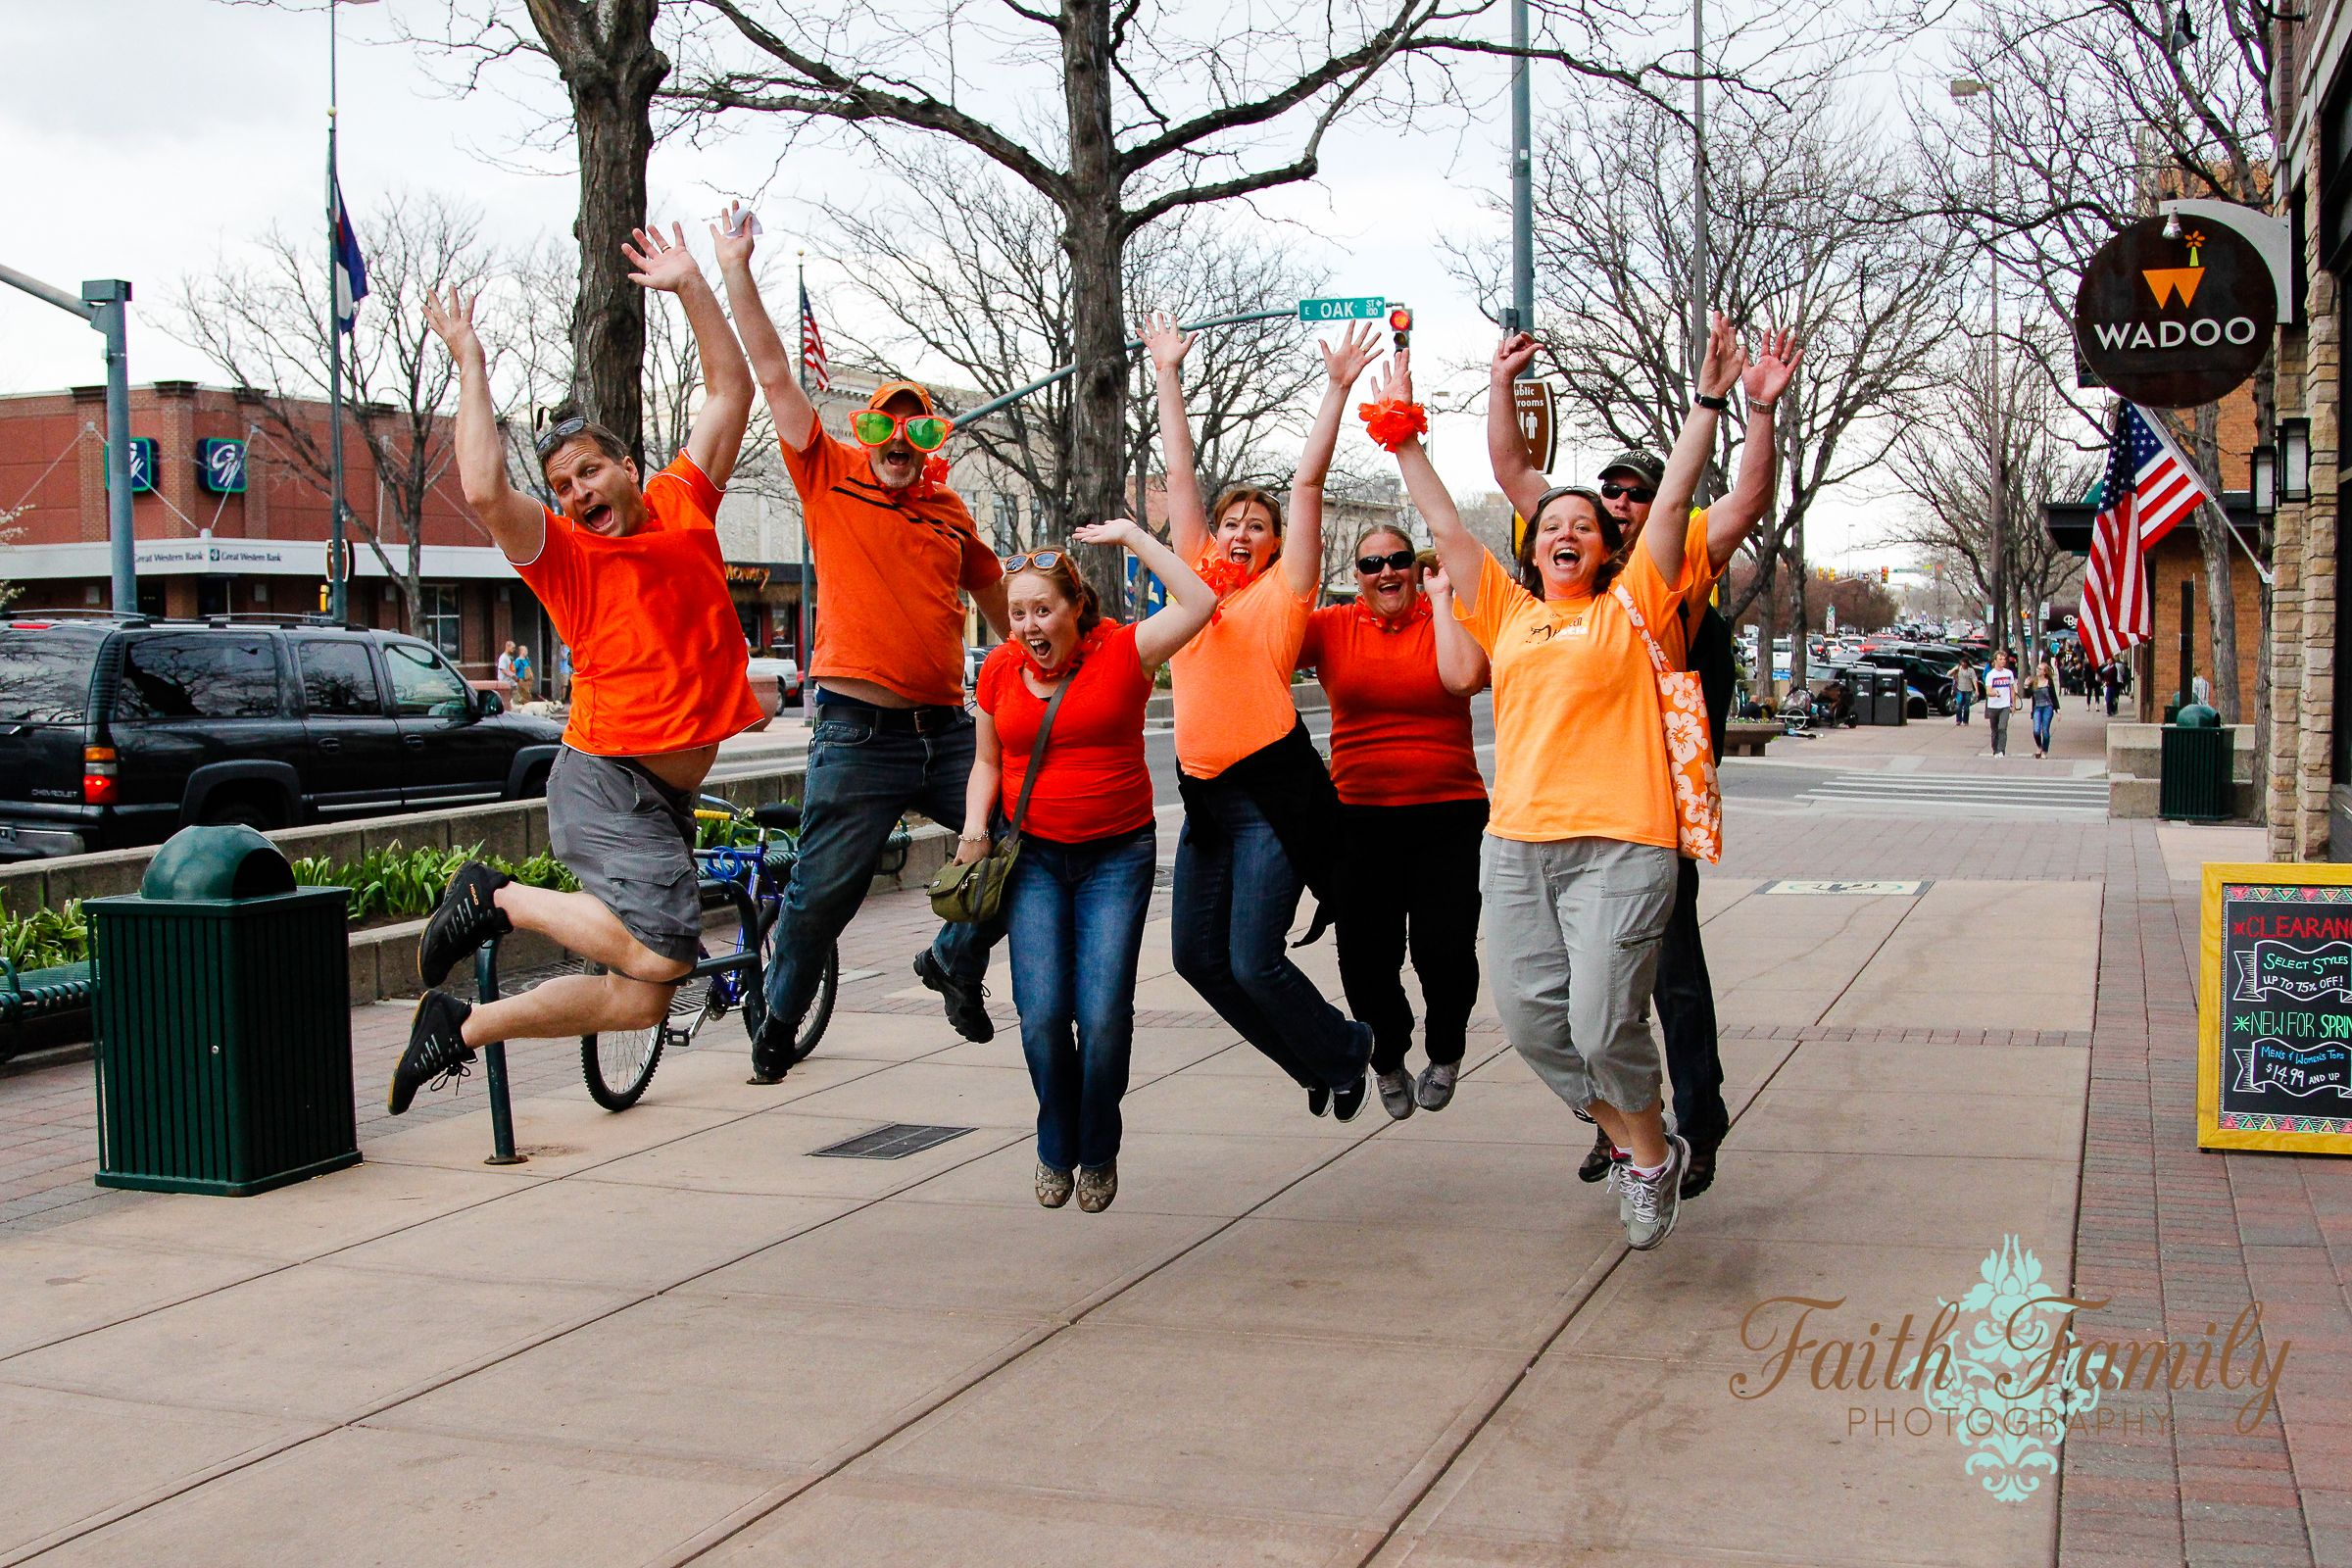 My Big Day Events, Colorado Weddings, Parties, Showers, Engagements, Corporate Events & More!  Loveland, Fort Collins, Windsor, Cheyenne, Mountains. http://www.mybigdaycompany.com/  Easter Keg Hunt #ScavengerHunt